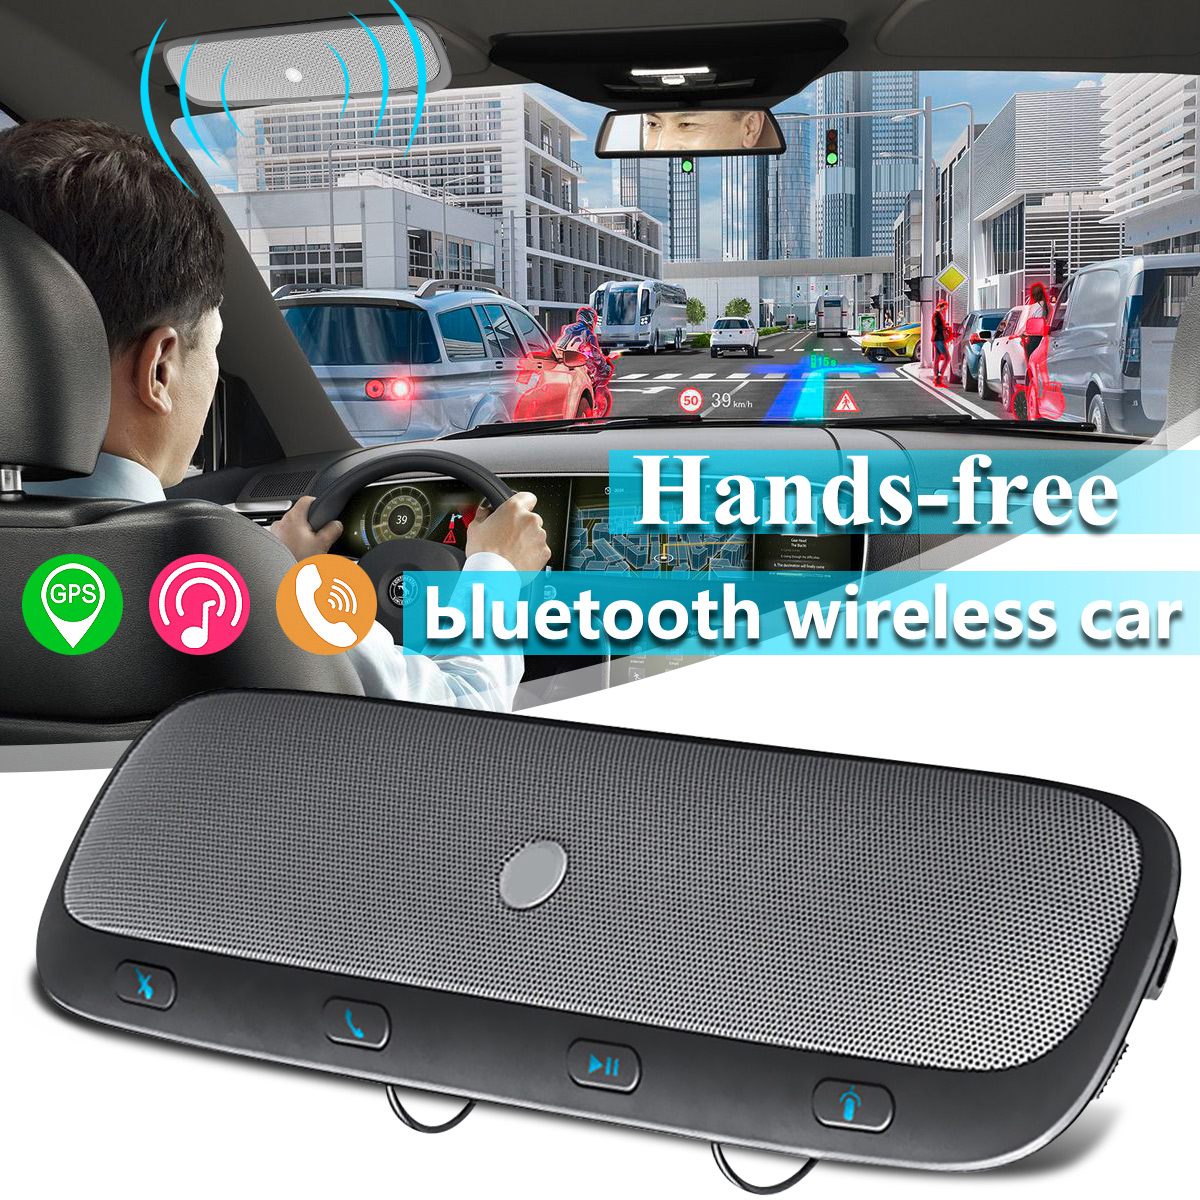 Wireless bluetooth Multipoint Handsfree Speakerphone Speaker Kit Car Sun Visor Clip With Iron Holder + Car Charger + USB Cable - Connecting TWO Phone At The Same Time